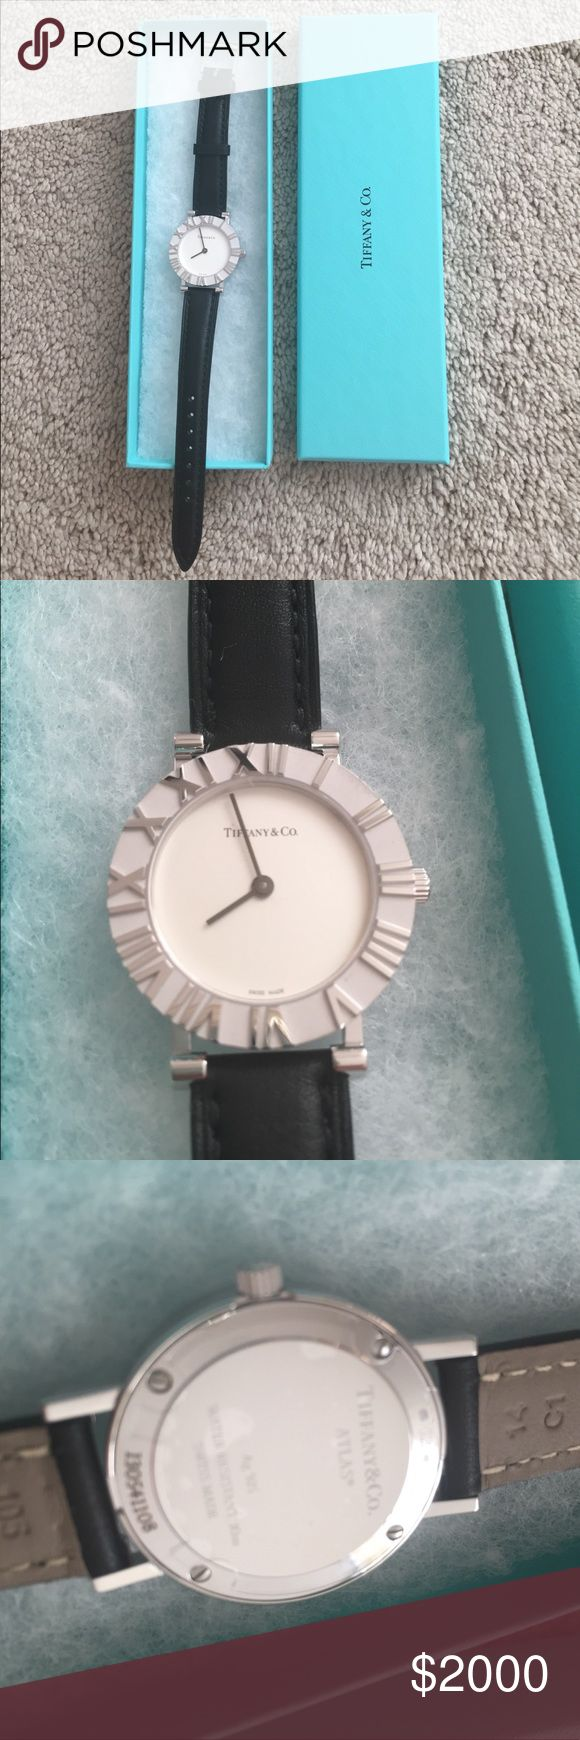 New Tiffany Watch Swiss made quartz watch with sterling silver and genuine leather straps. 29mm dial. Never worn, still has protective film on back. Comes with Tiffany shopping bag. Classy and timeless. Perfect holiday gift, won't last long. Tiffany & Co. Accessories Watches